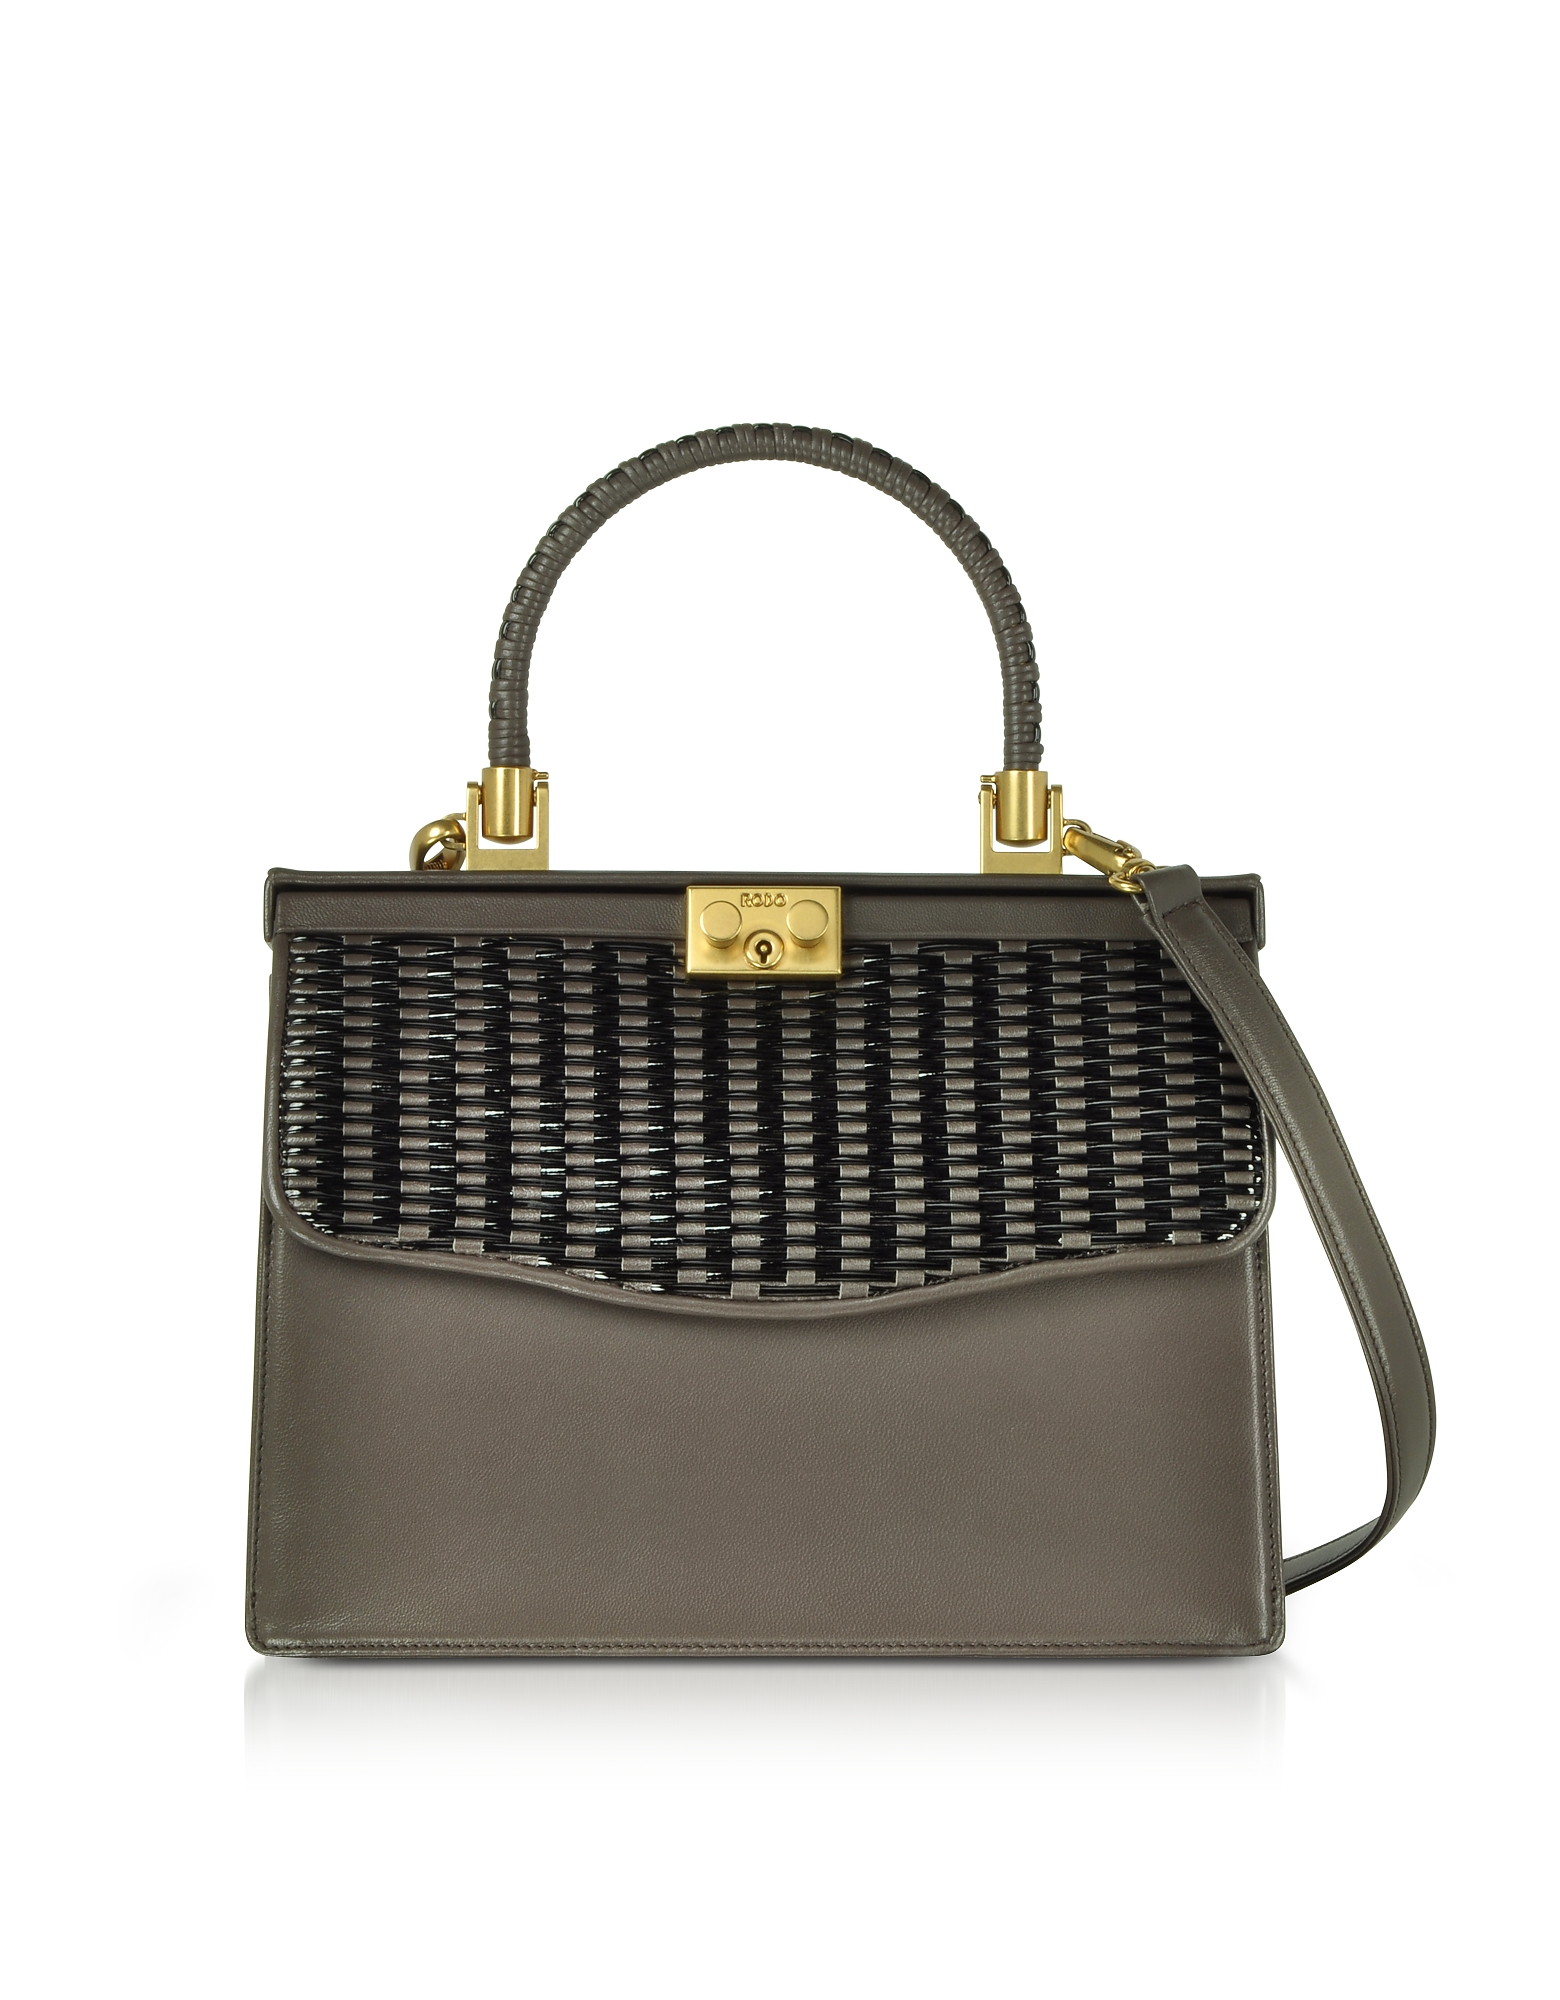 Rodo Handbags, Taupe Woven Leather Top Handle Satchel Bag